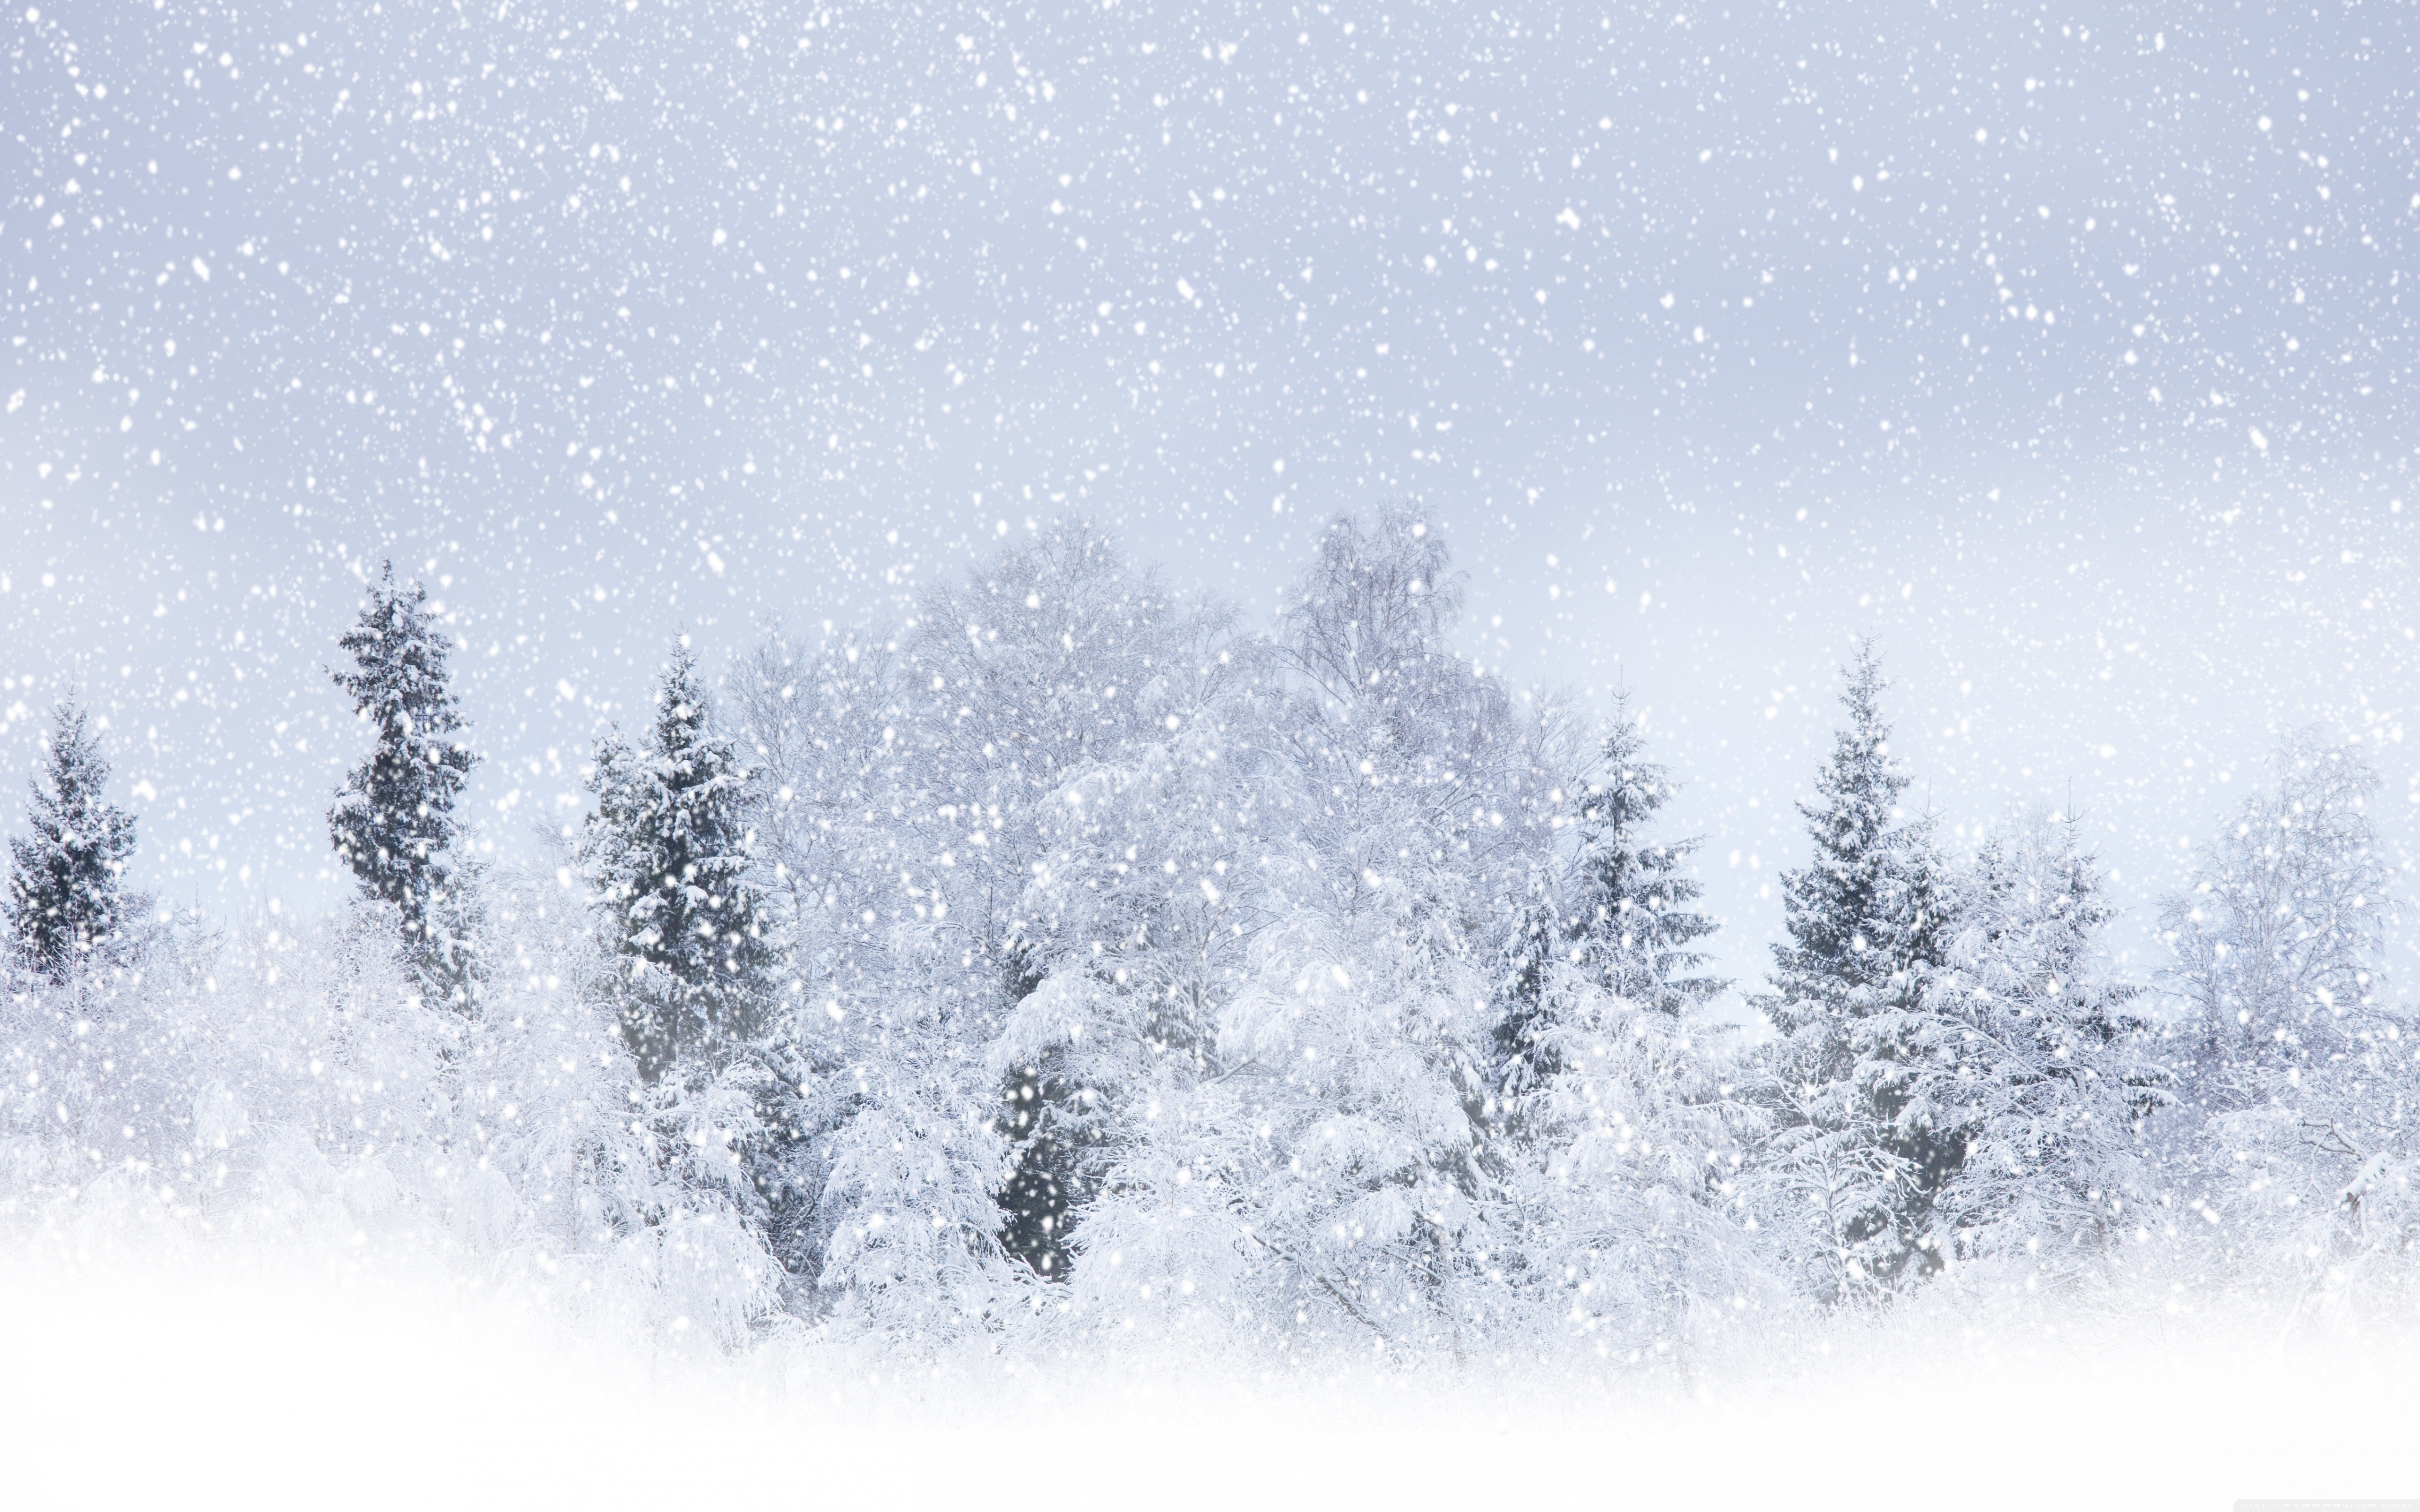 Snowstorm in the wood. Blizzard clipart frost